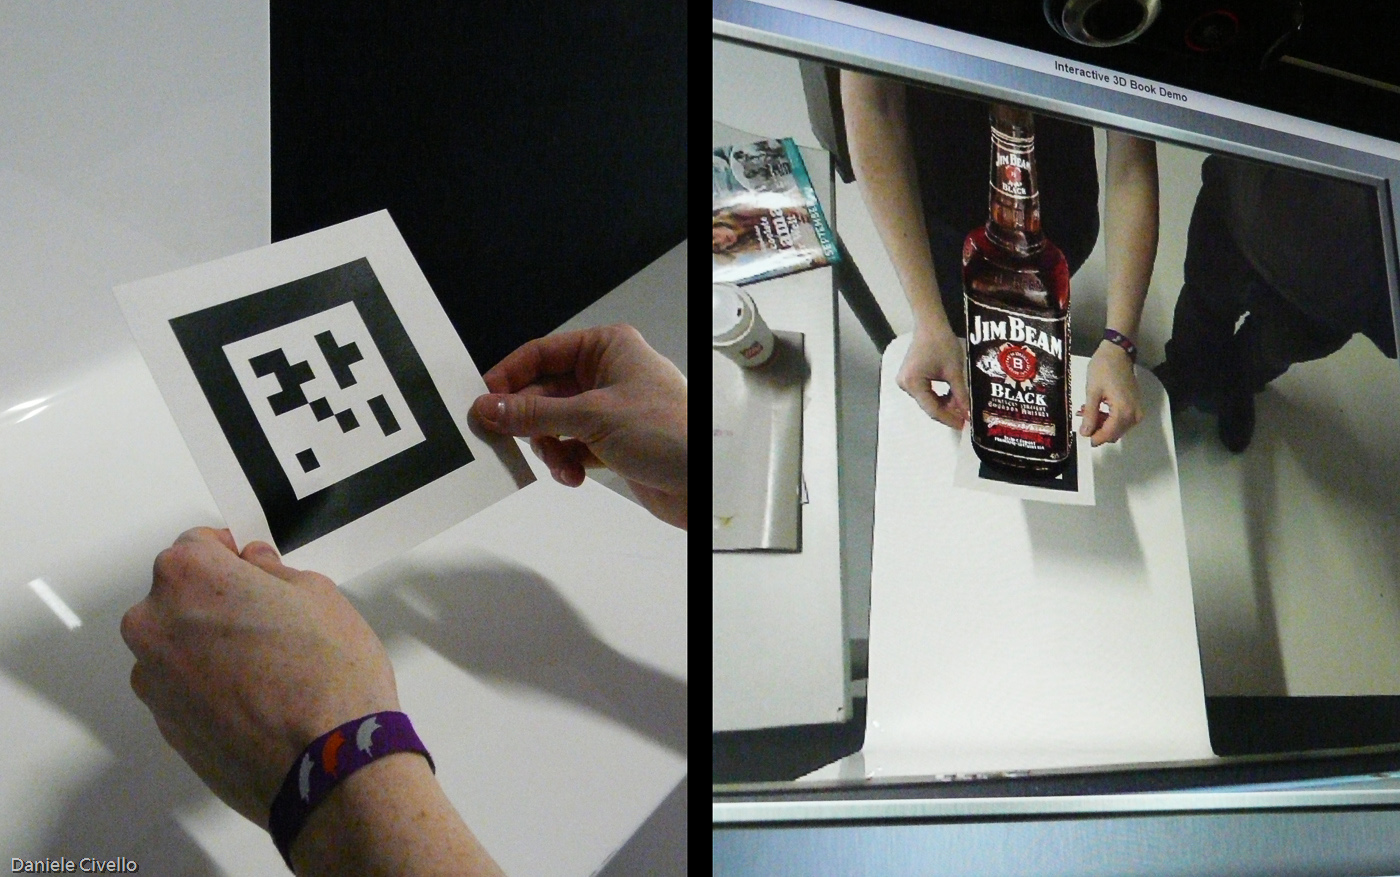 AR modifies the real environment by overlaying computer-generated images and sound.   Daniele Civello/Flickr  (CC-BY-NC 2.0)